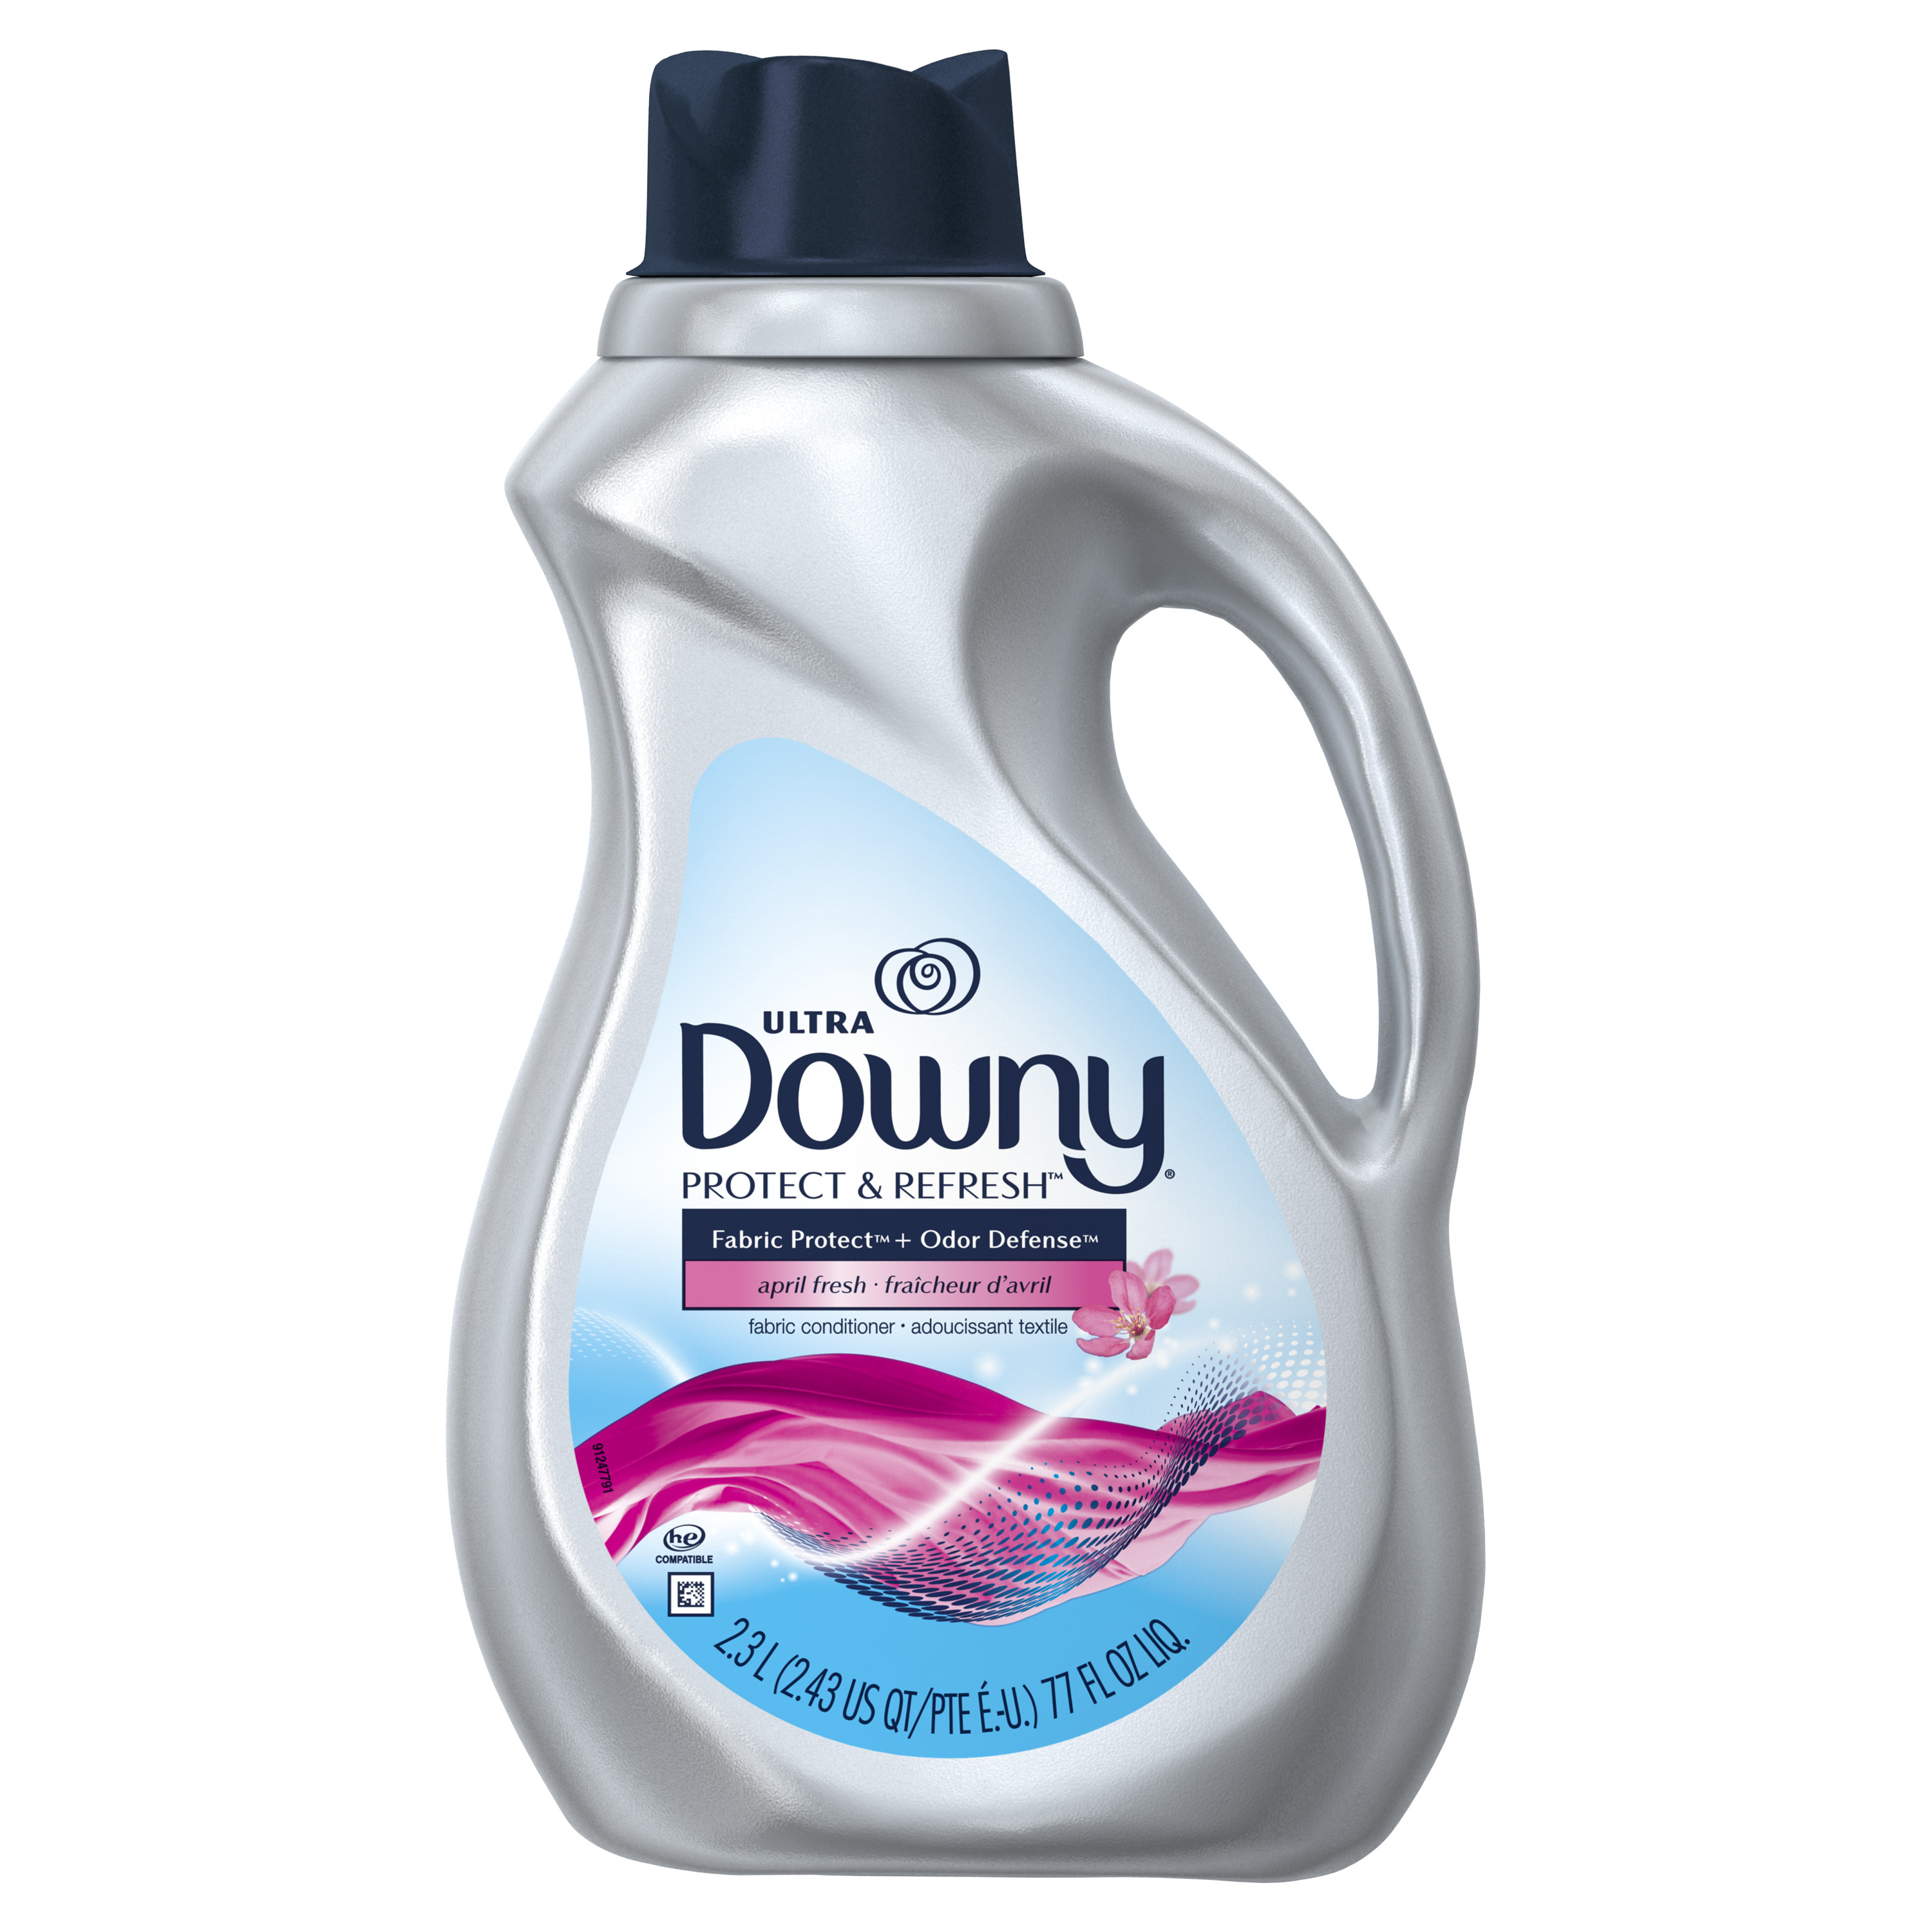 Downy Protect & Refresh, April Fresh, Liquid Fabric Conditioner (Fabric Softener), 77 fl oz